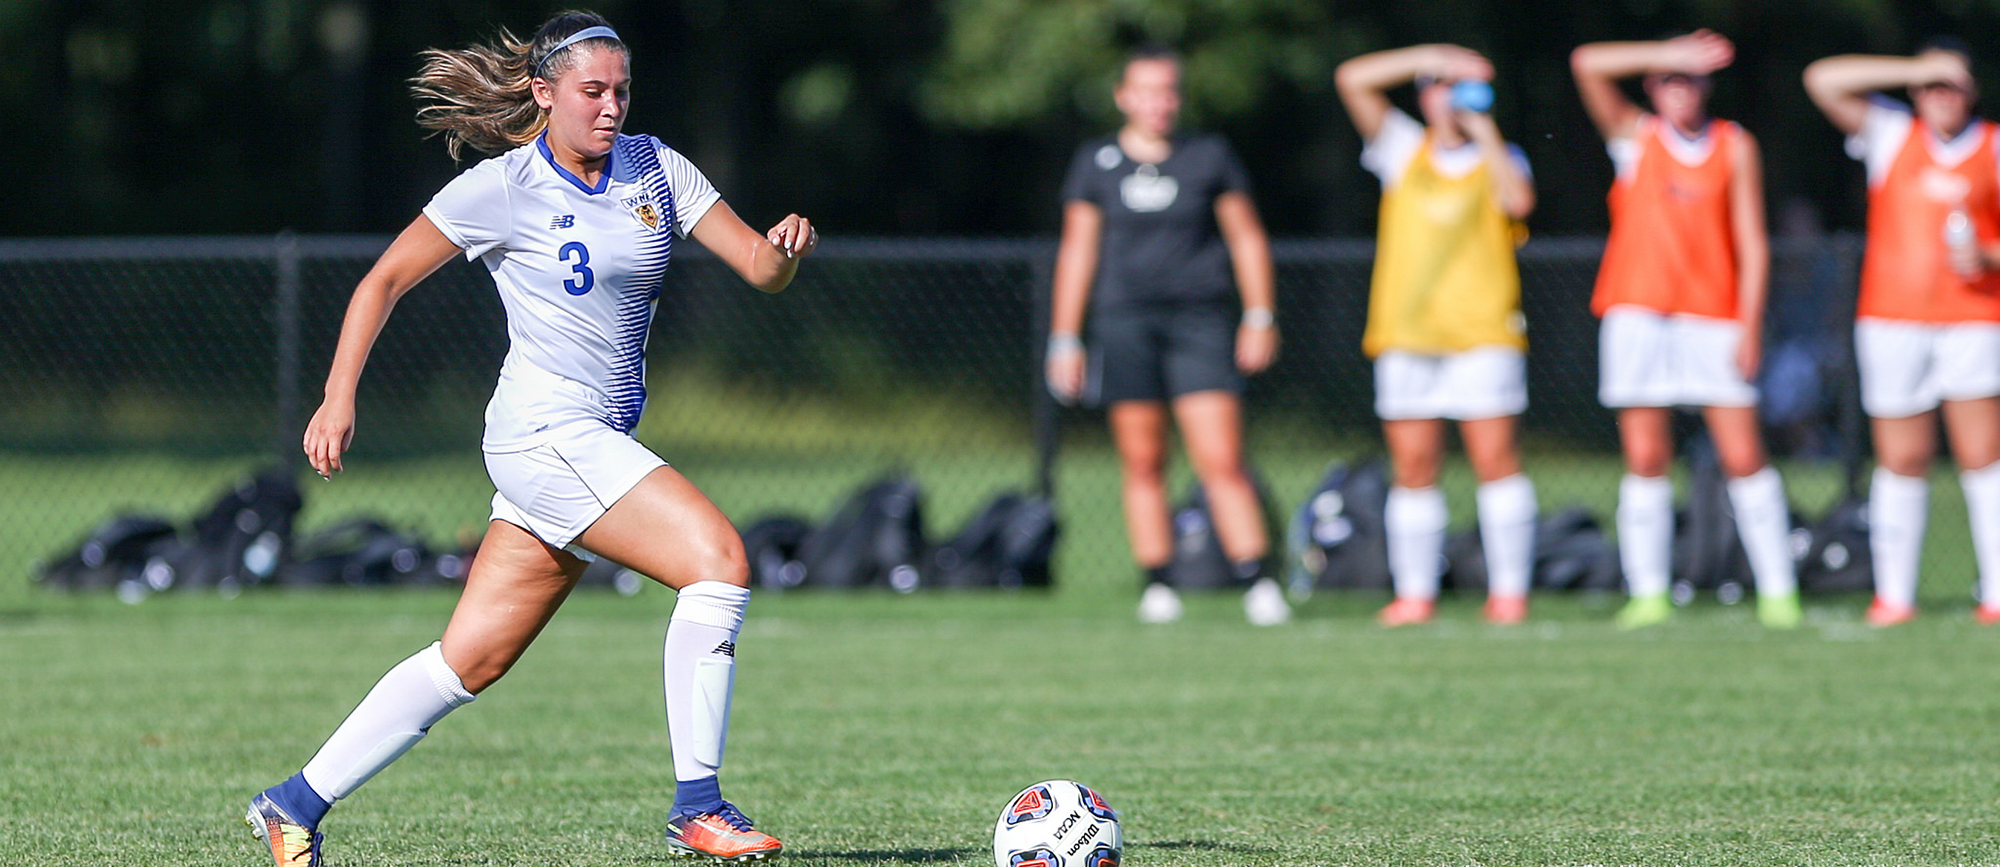 Morgan Smith scored her team-leading fifth goal of the season in overtime to lift WNE to a 1-0 CCC road win at Nichols on Saturday night. (Photo by Chris Marion)